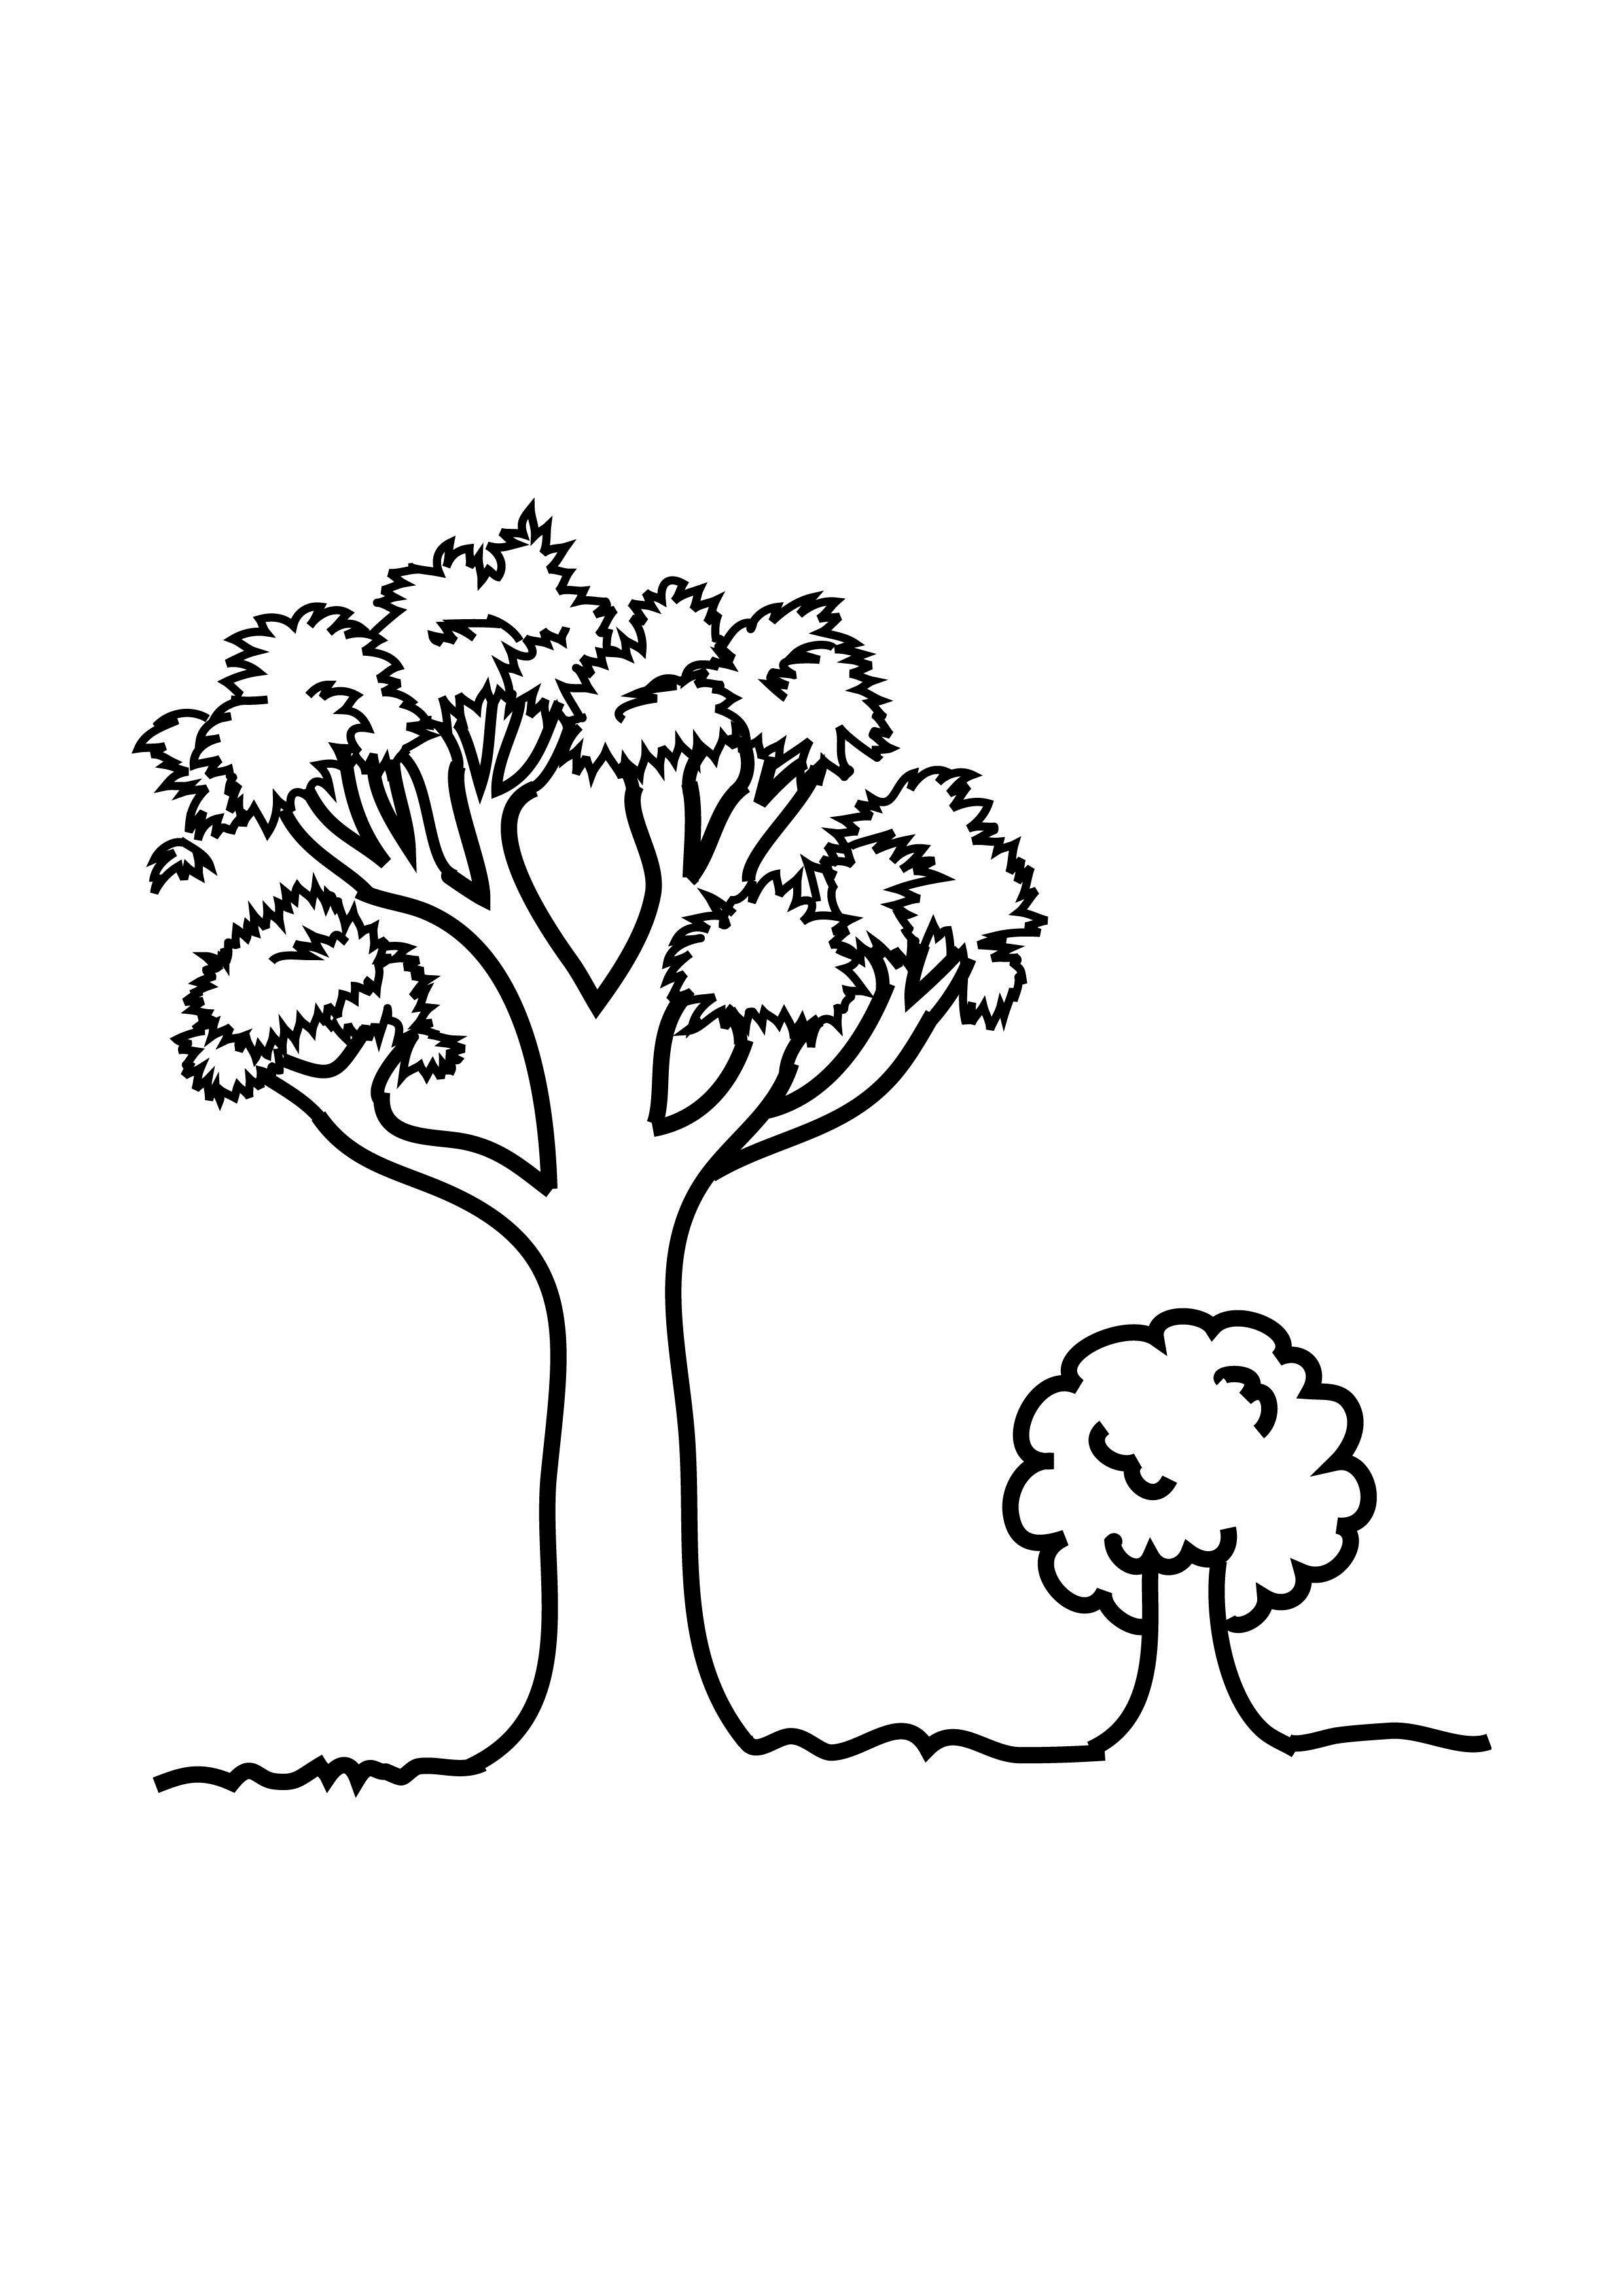 coloring sheet of a tree free printable tree coloring pages for kids of a sheet tree coloring